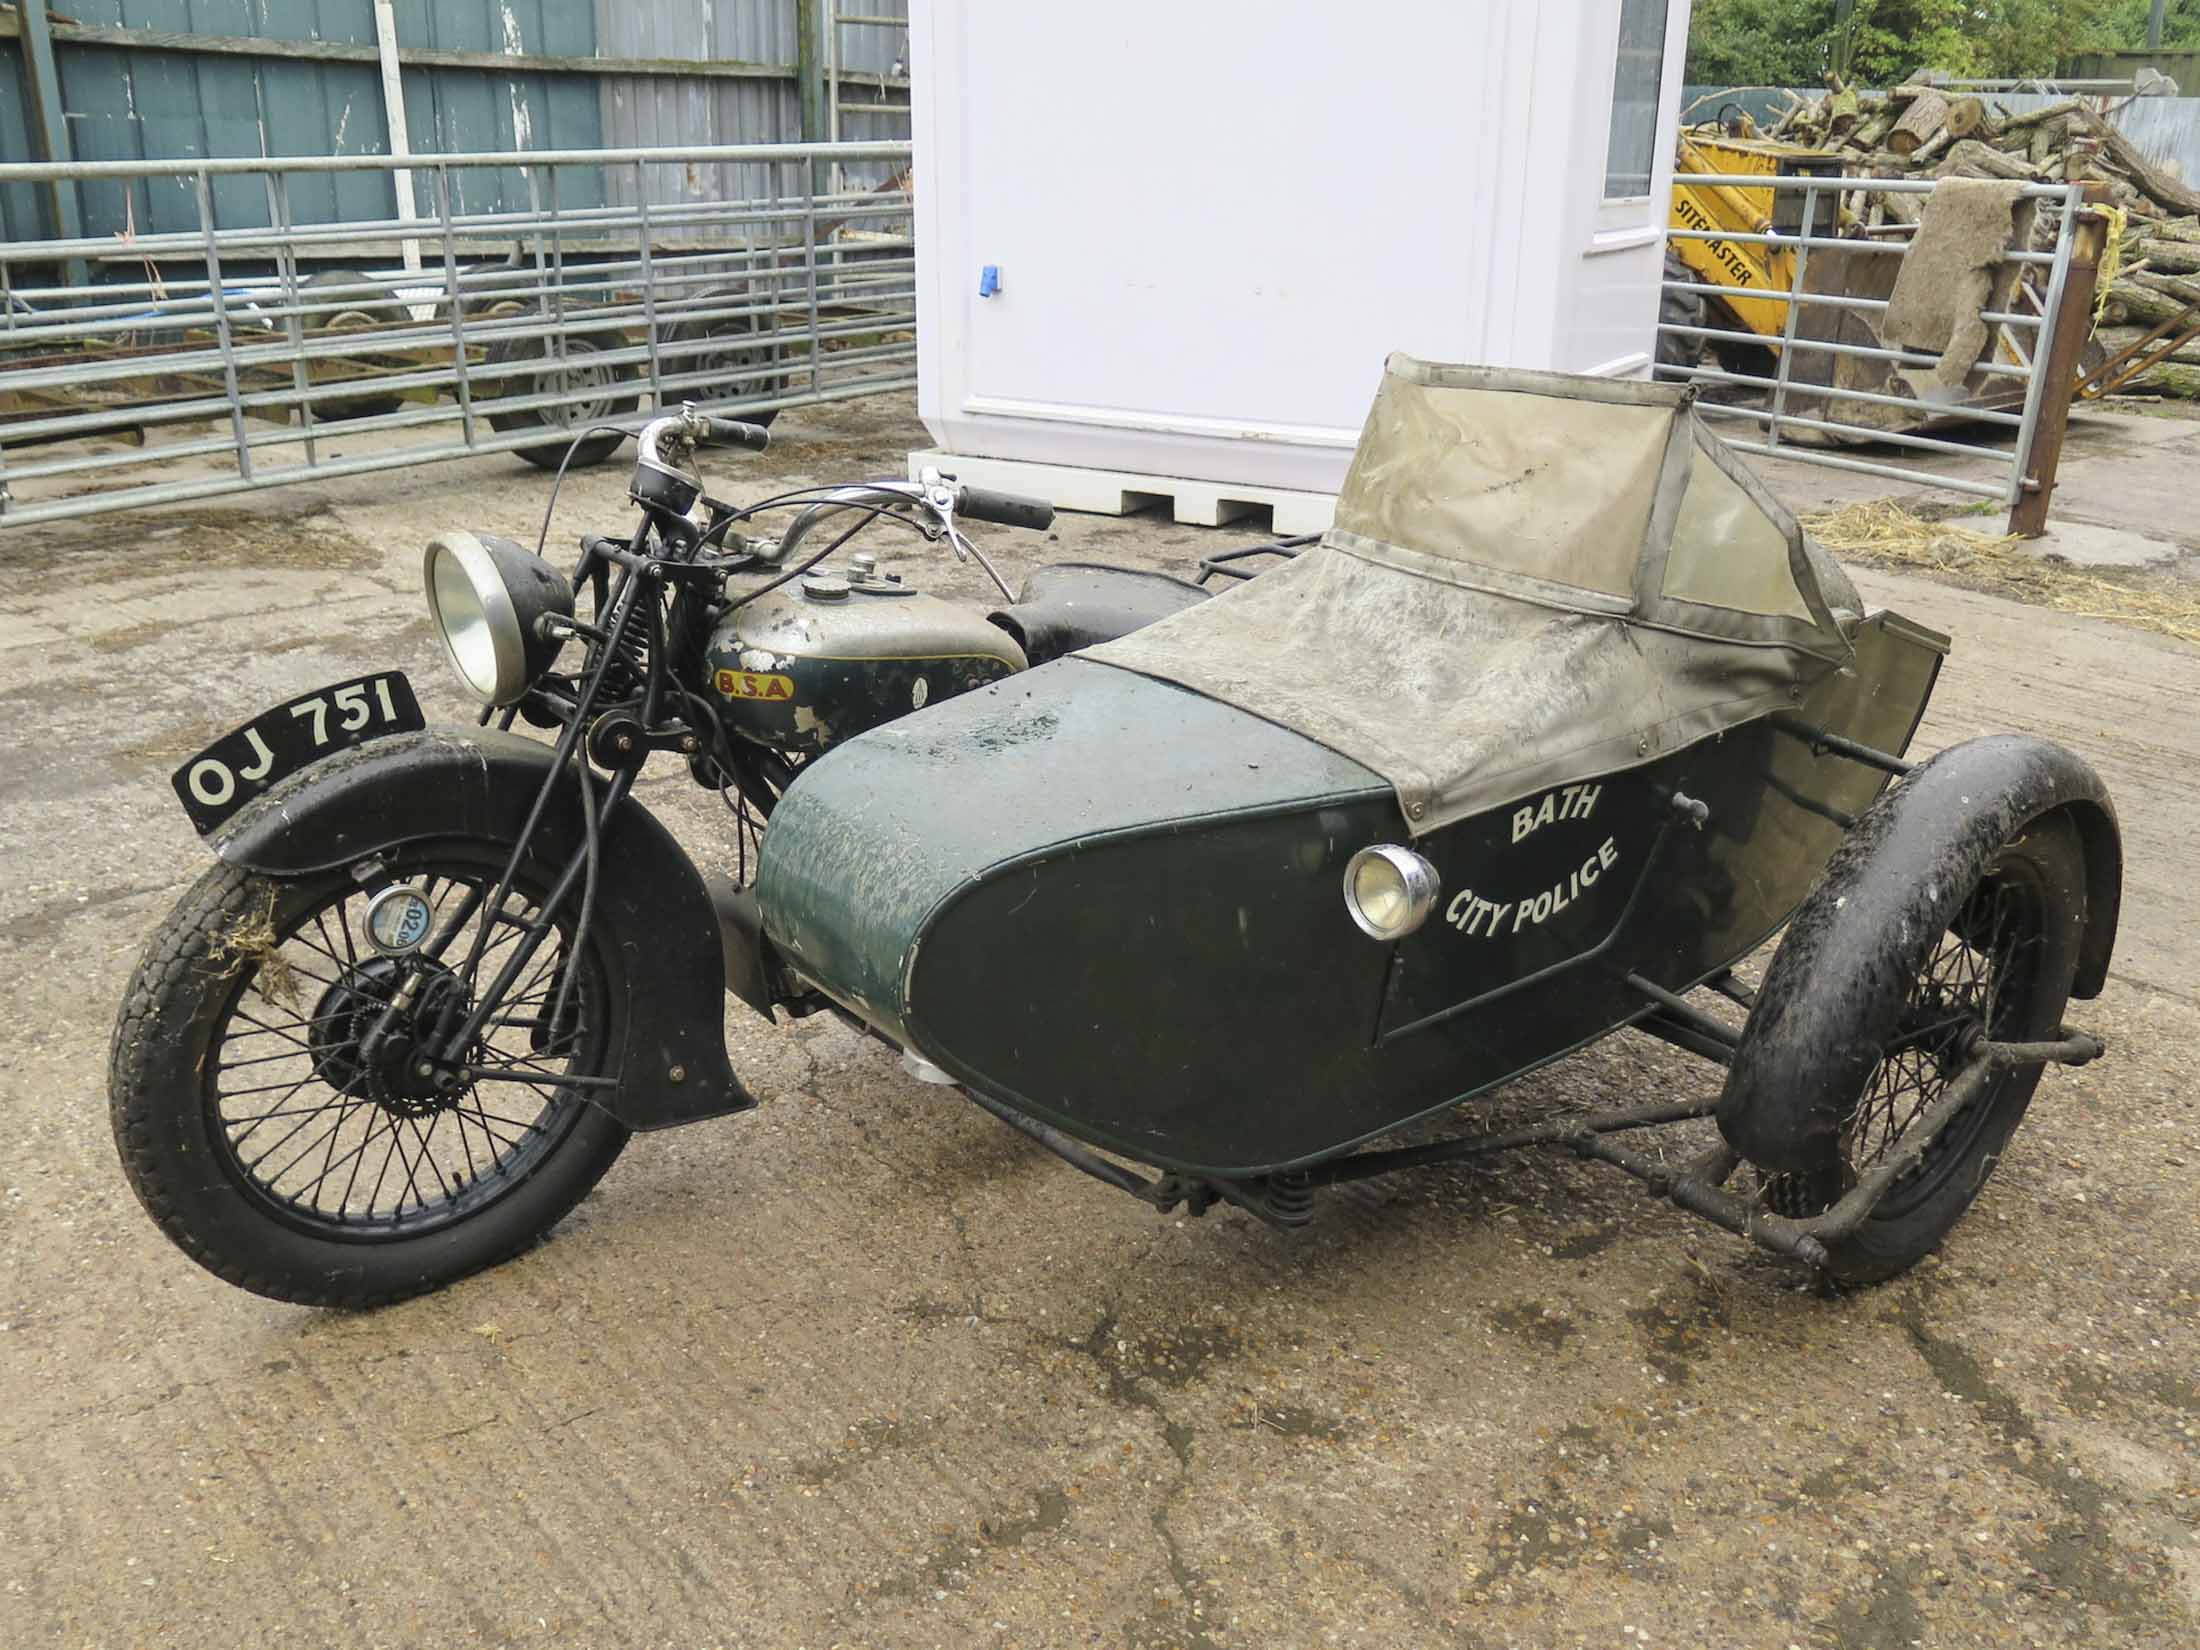 sidecar motorcycle sidecars motorcycles barn motorbike bike bsa motorbikes classic found 1932 four police gloucestershire entering go brough outfits social